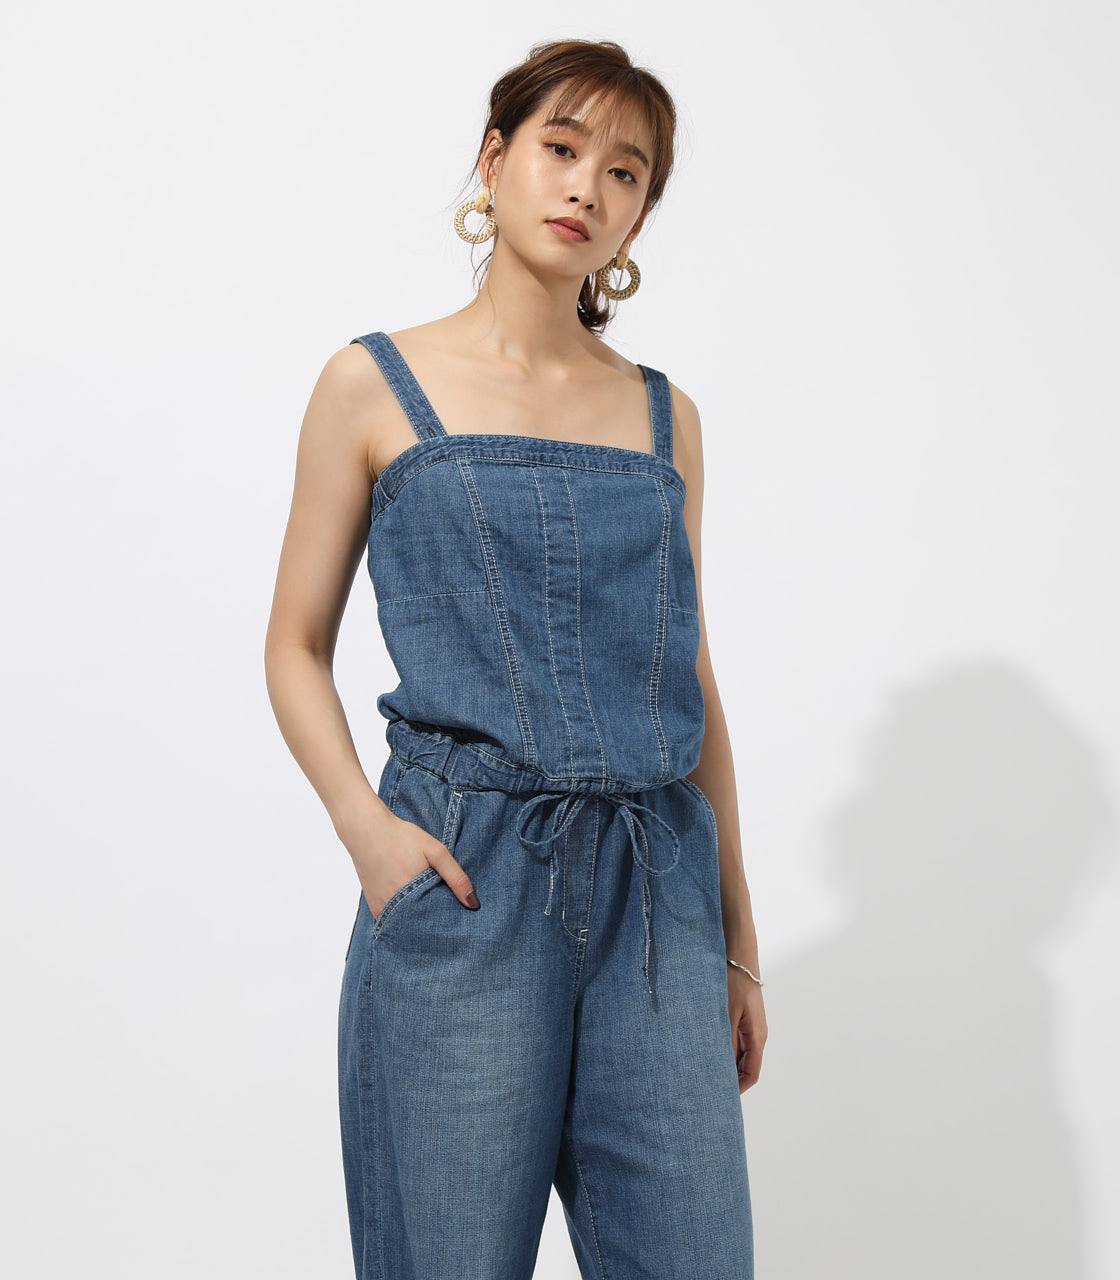 BACK LACEUP OVERALLS 詳細画像 BLU 3